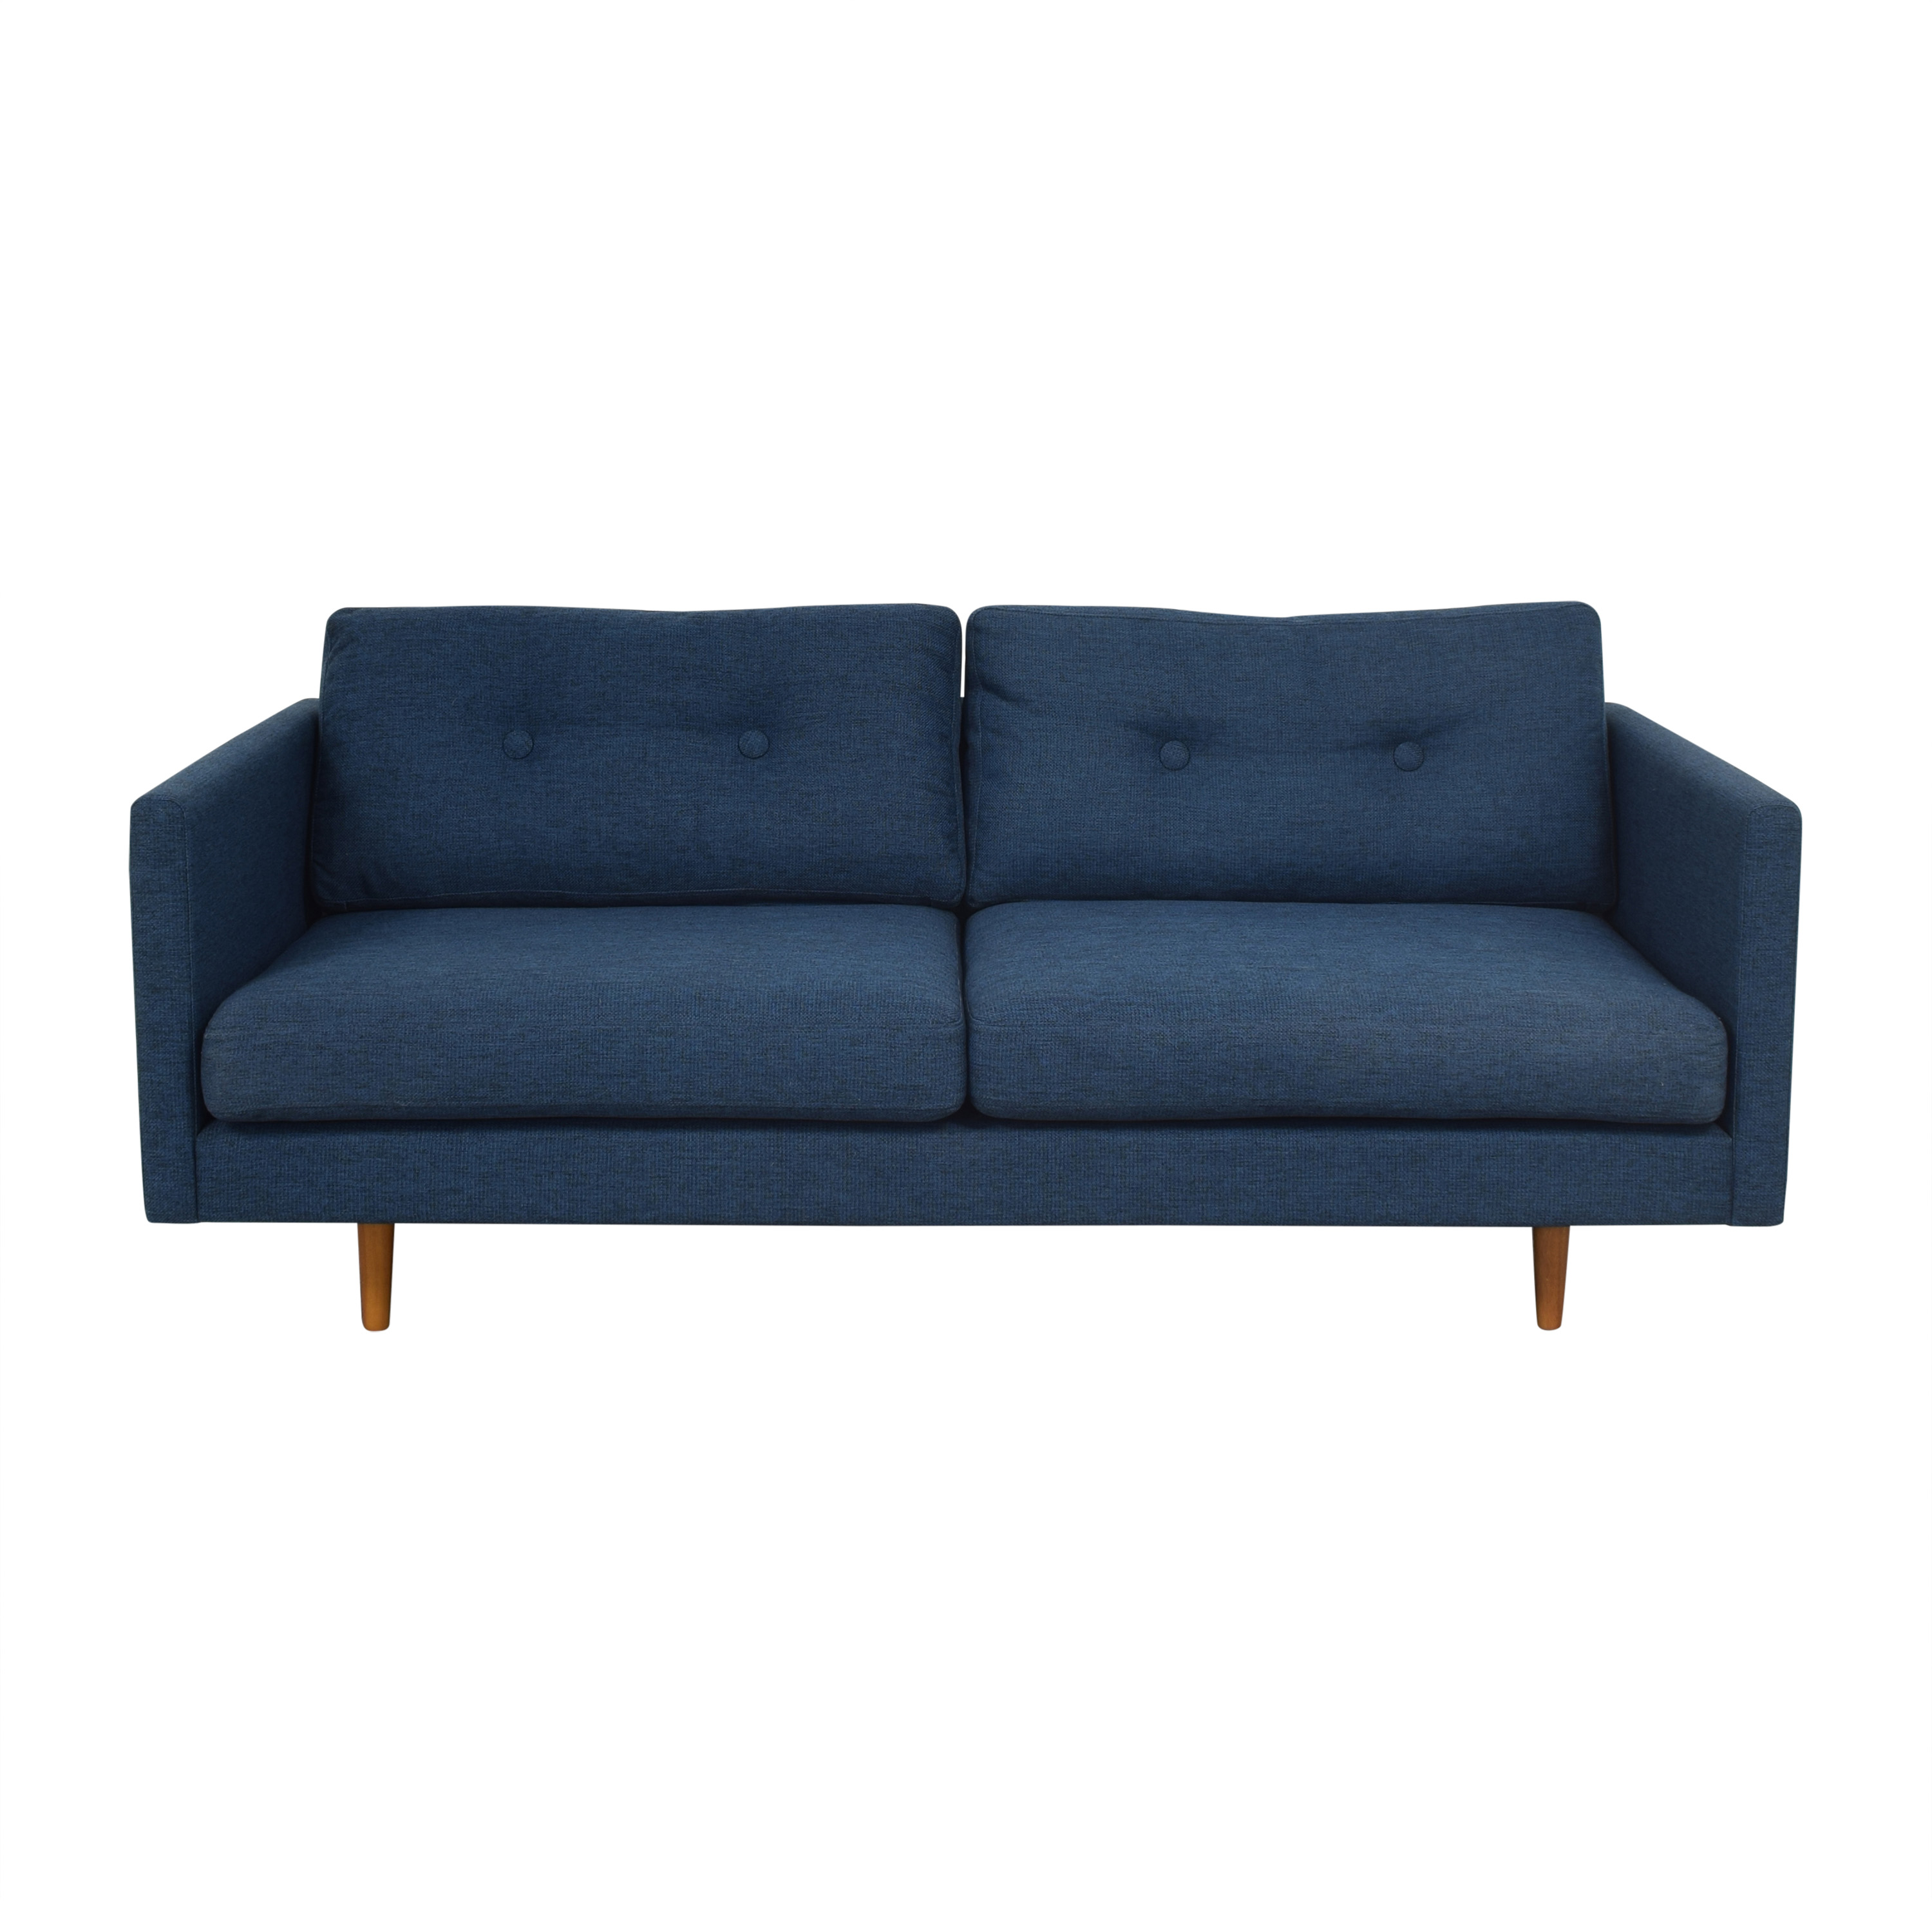 Article Article Anton Sofa discount